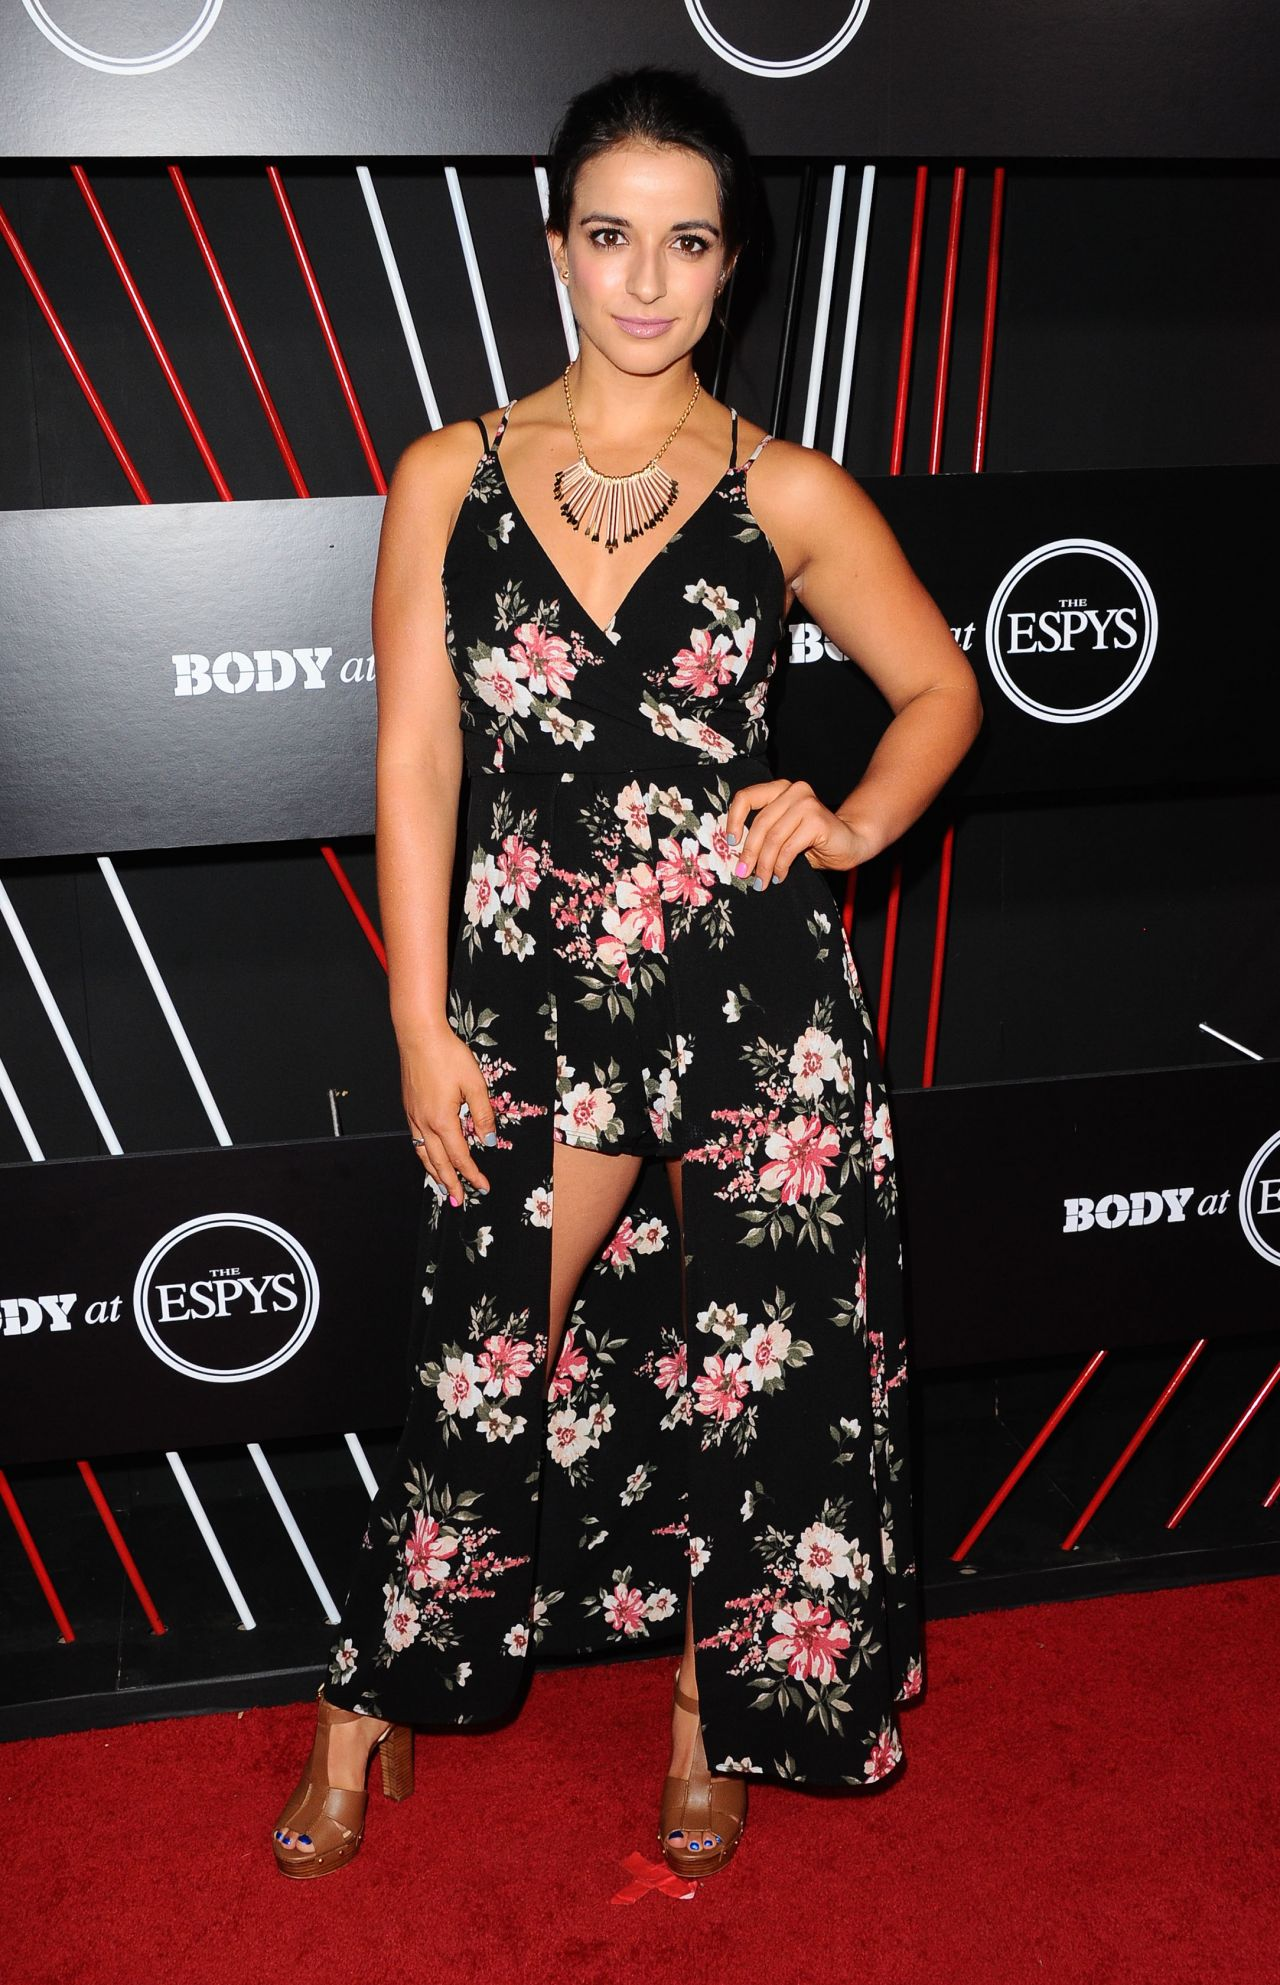 Arlen – BODY at ESPYS Party in Los Angeles 07/11/2017